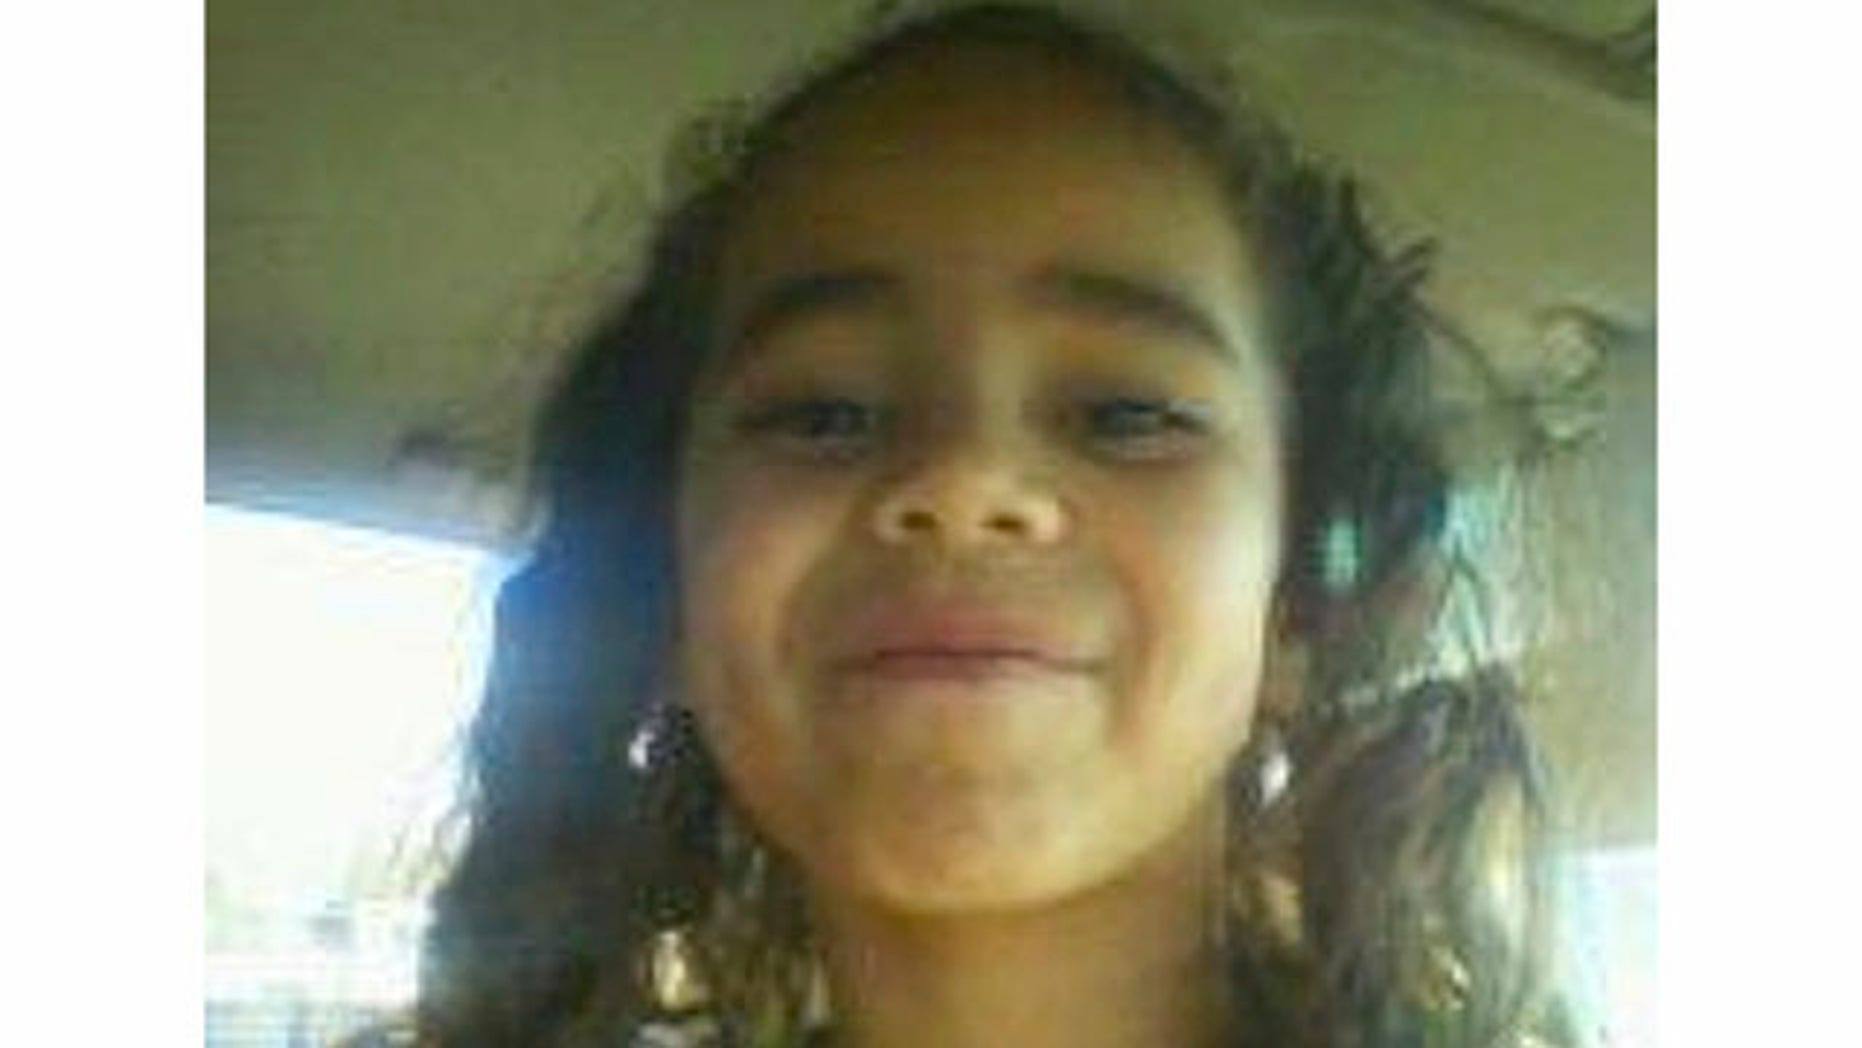 Jorelys Rivera, 7, of Canton, Ga., was abducted from a playground last Friday when her babysitter left her unattended. Rivera's body was found in a trash compactor days later.